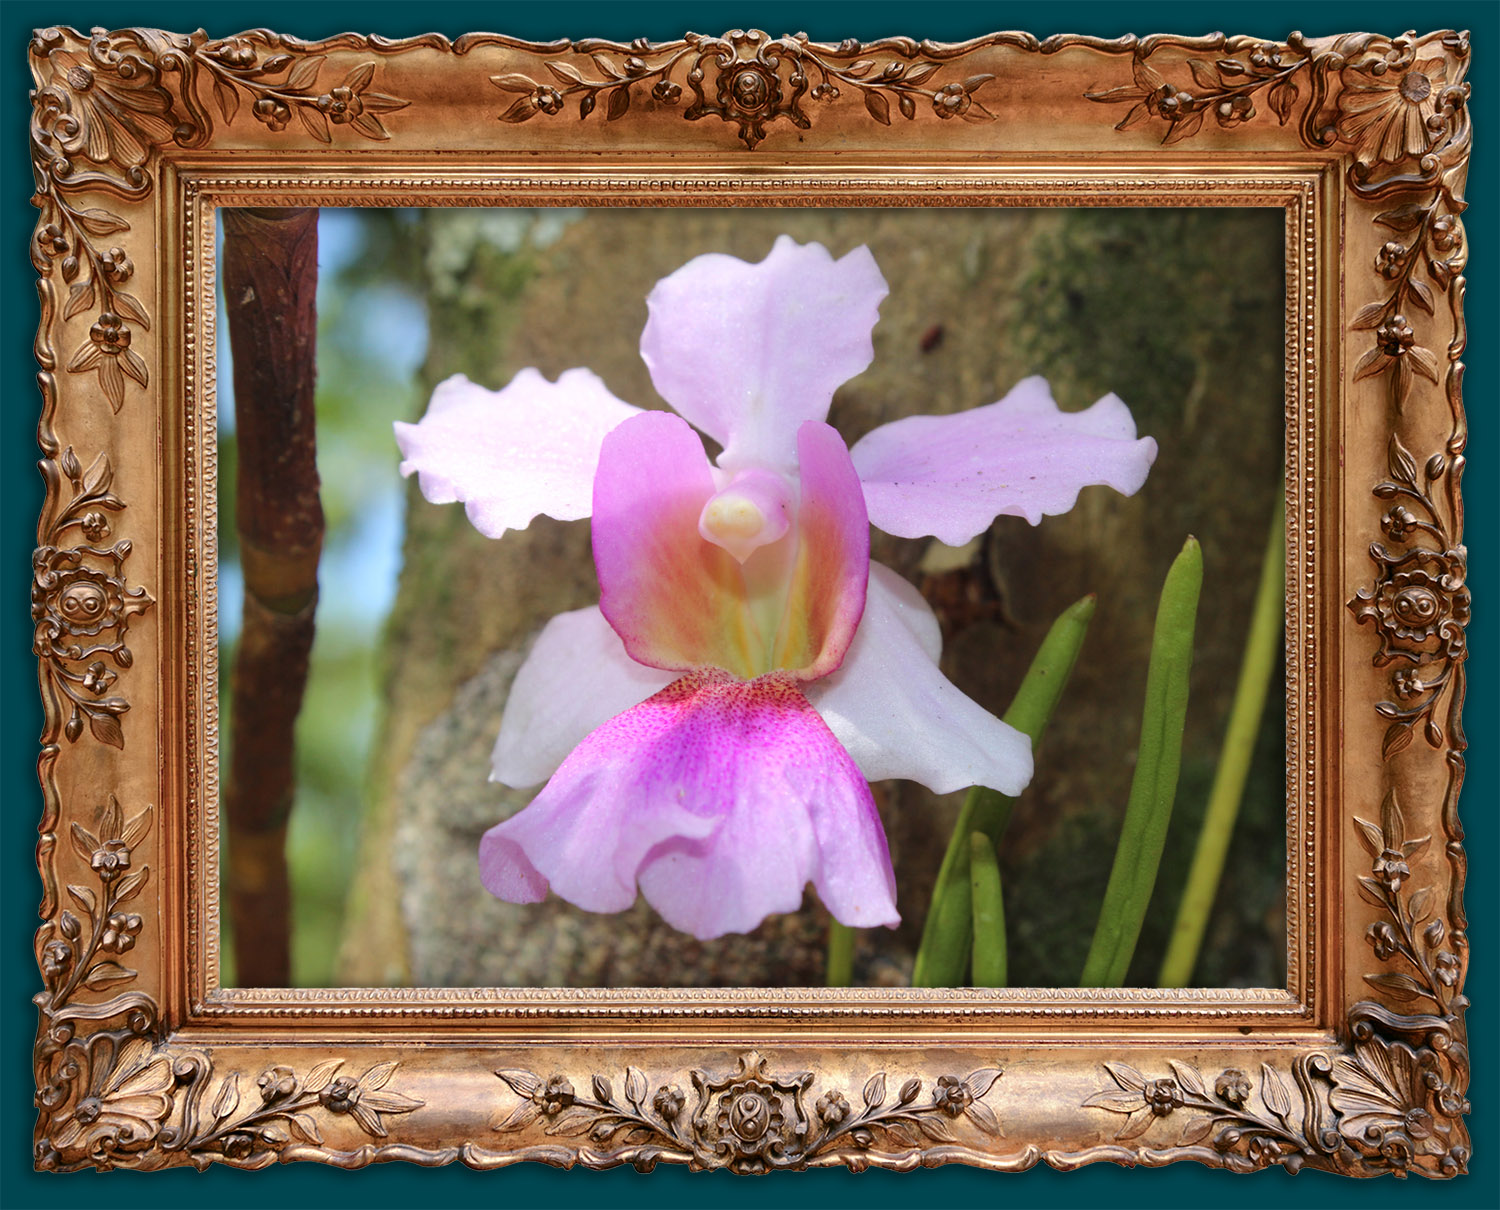 Our beautiful, local orchids